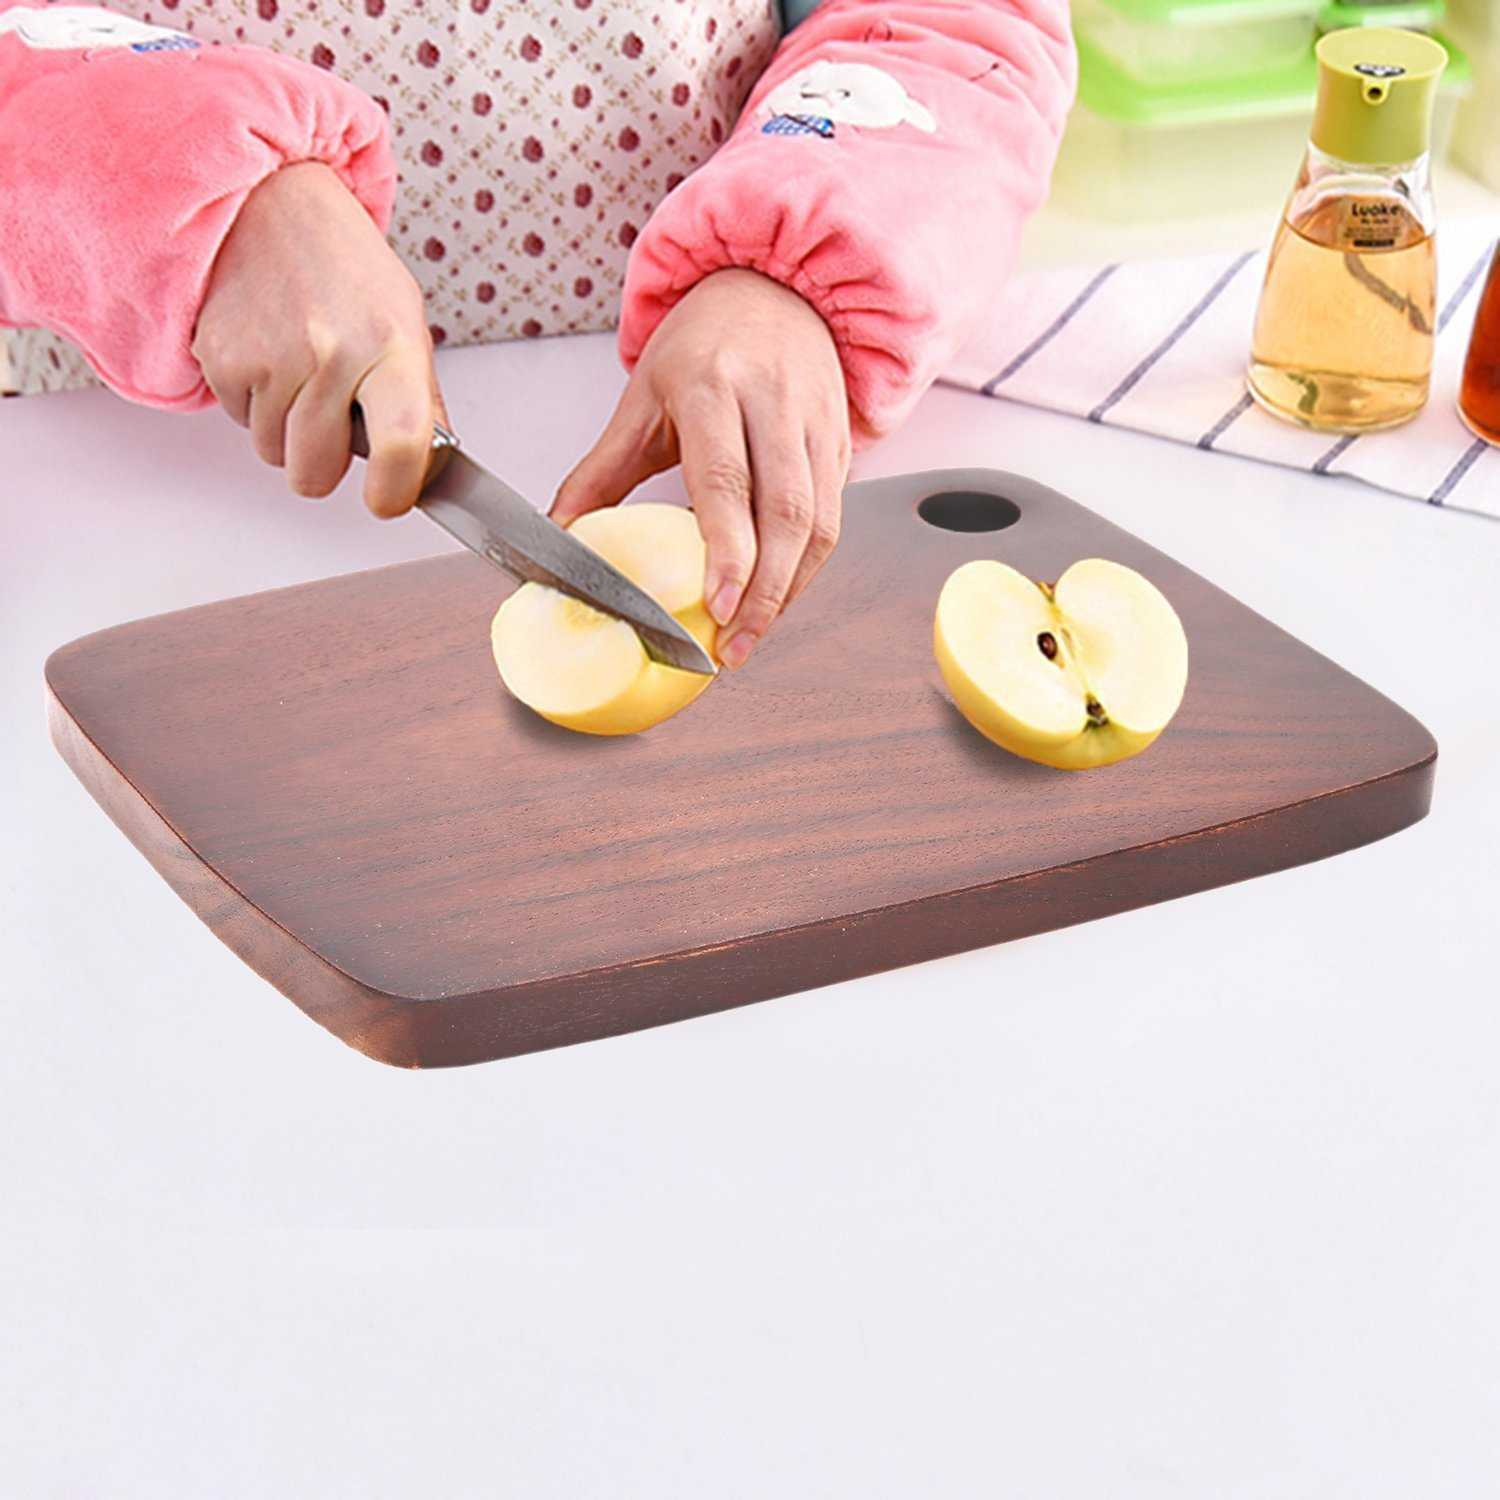 Reversible Chopping Board with Handle